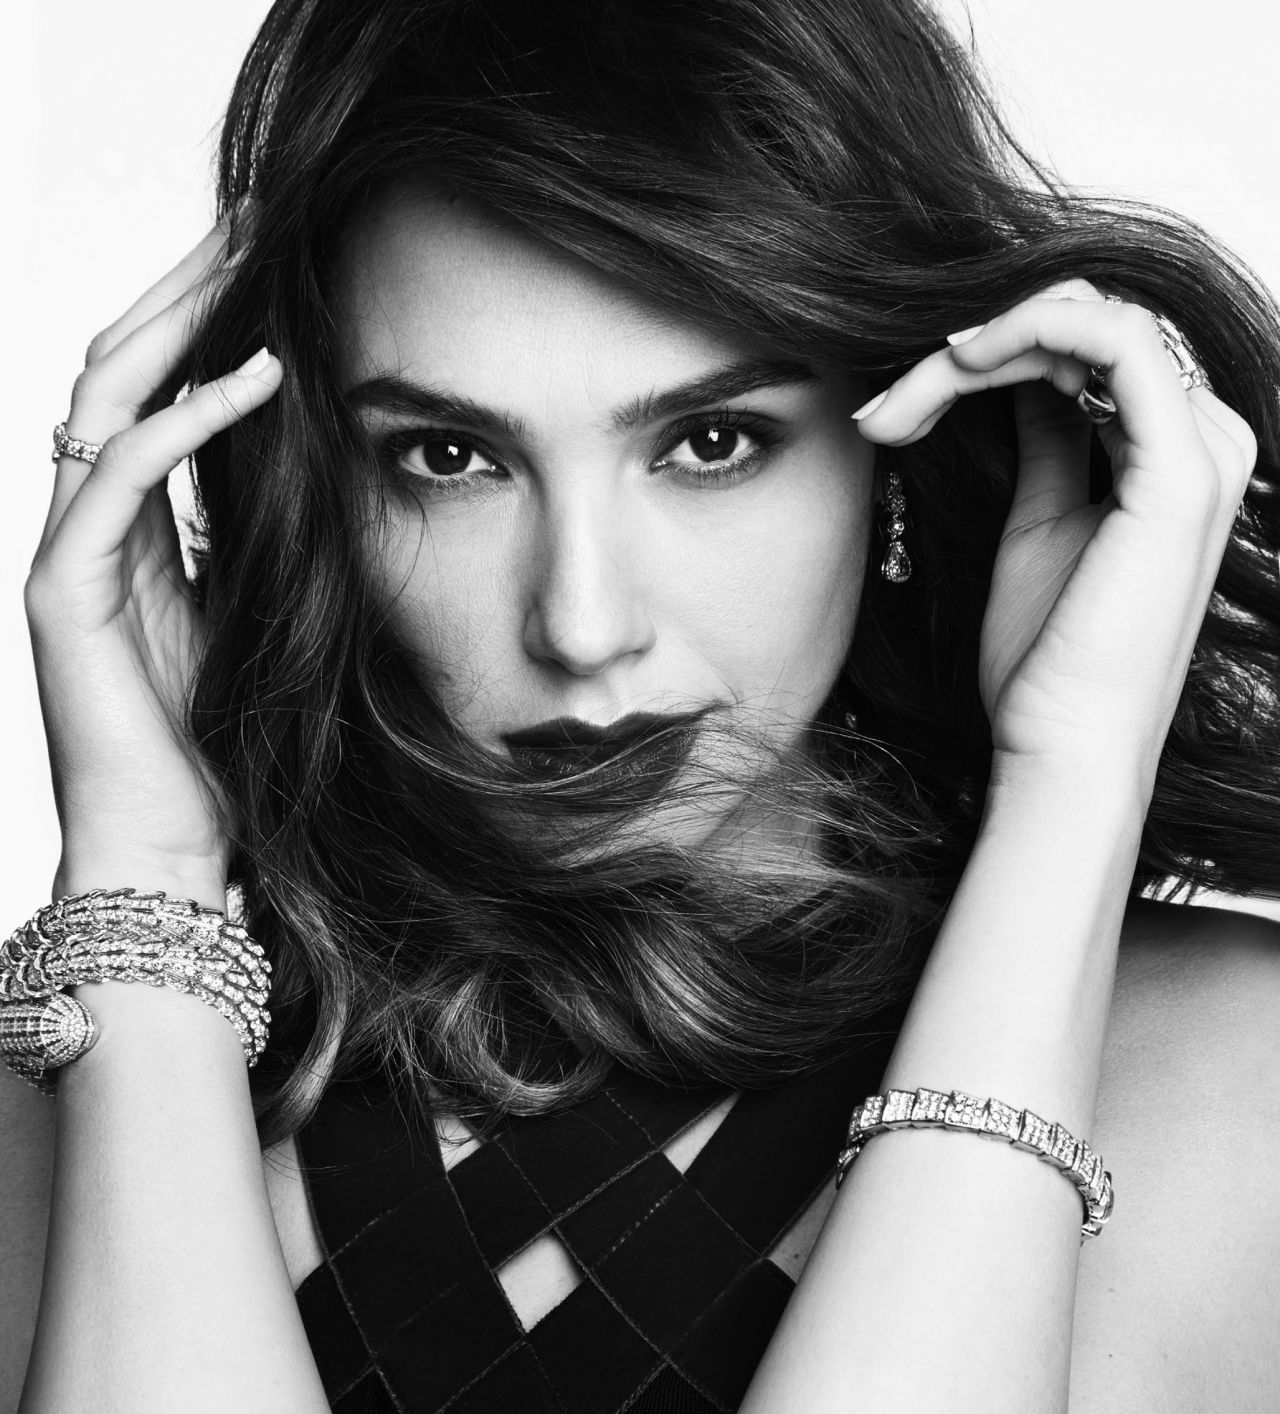 http://celebmafia.com/wp-content/uploads/2017/08/gal-gadot-photoshoot-for-marie-claire-2017-5.jpg